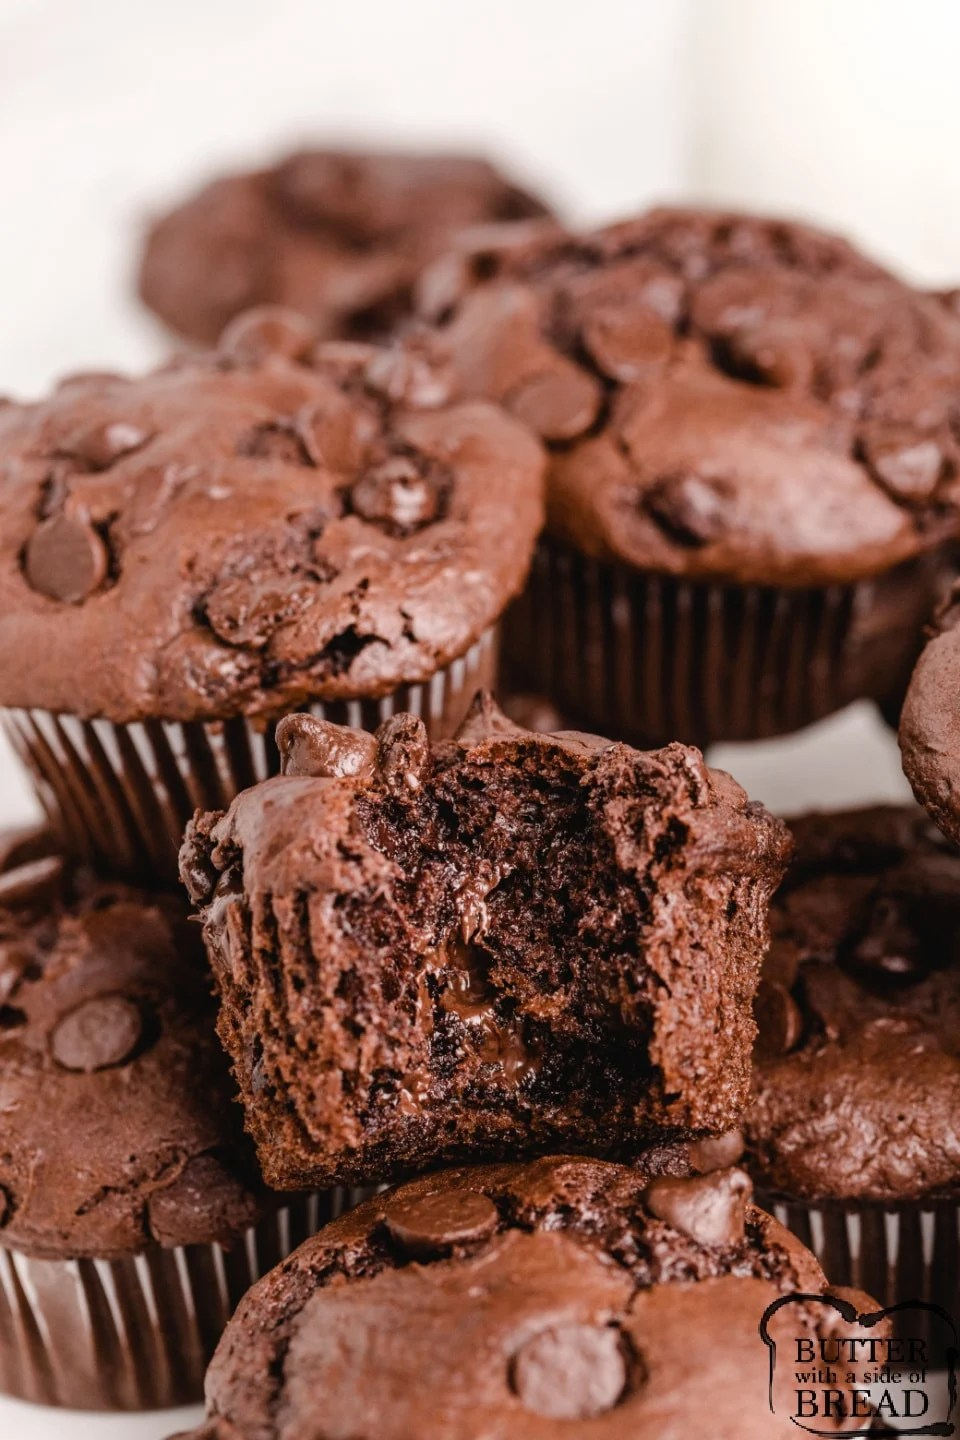 Chocolate chocolate chip muffin recipe made with cake mix and pudding